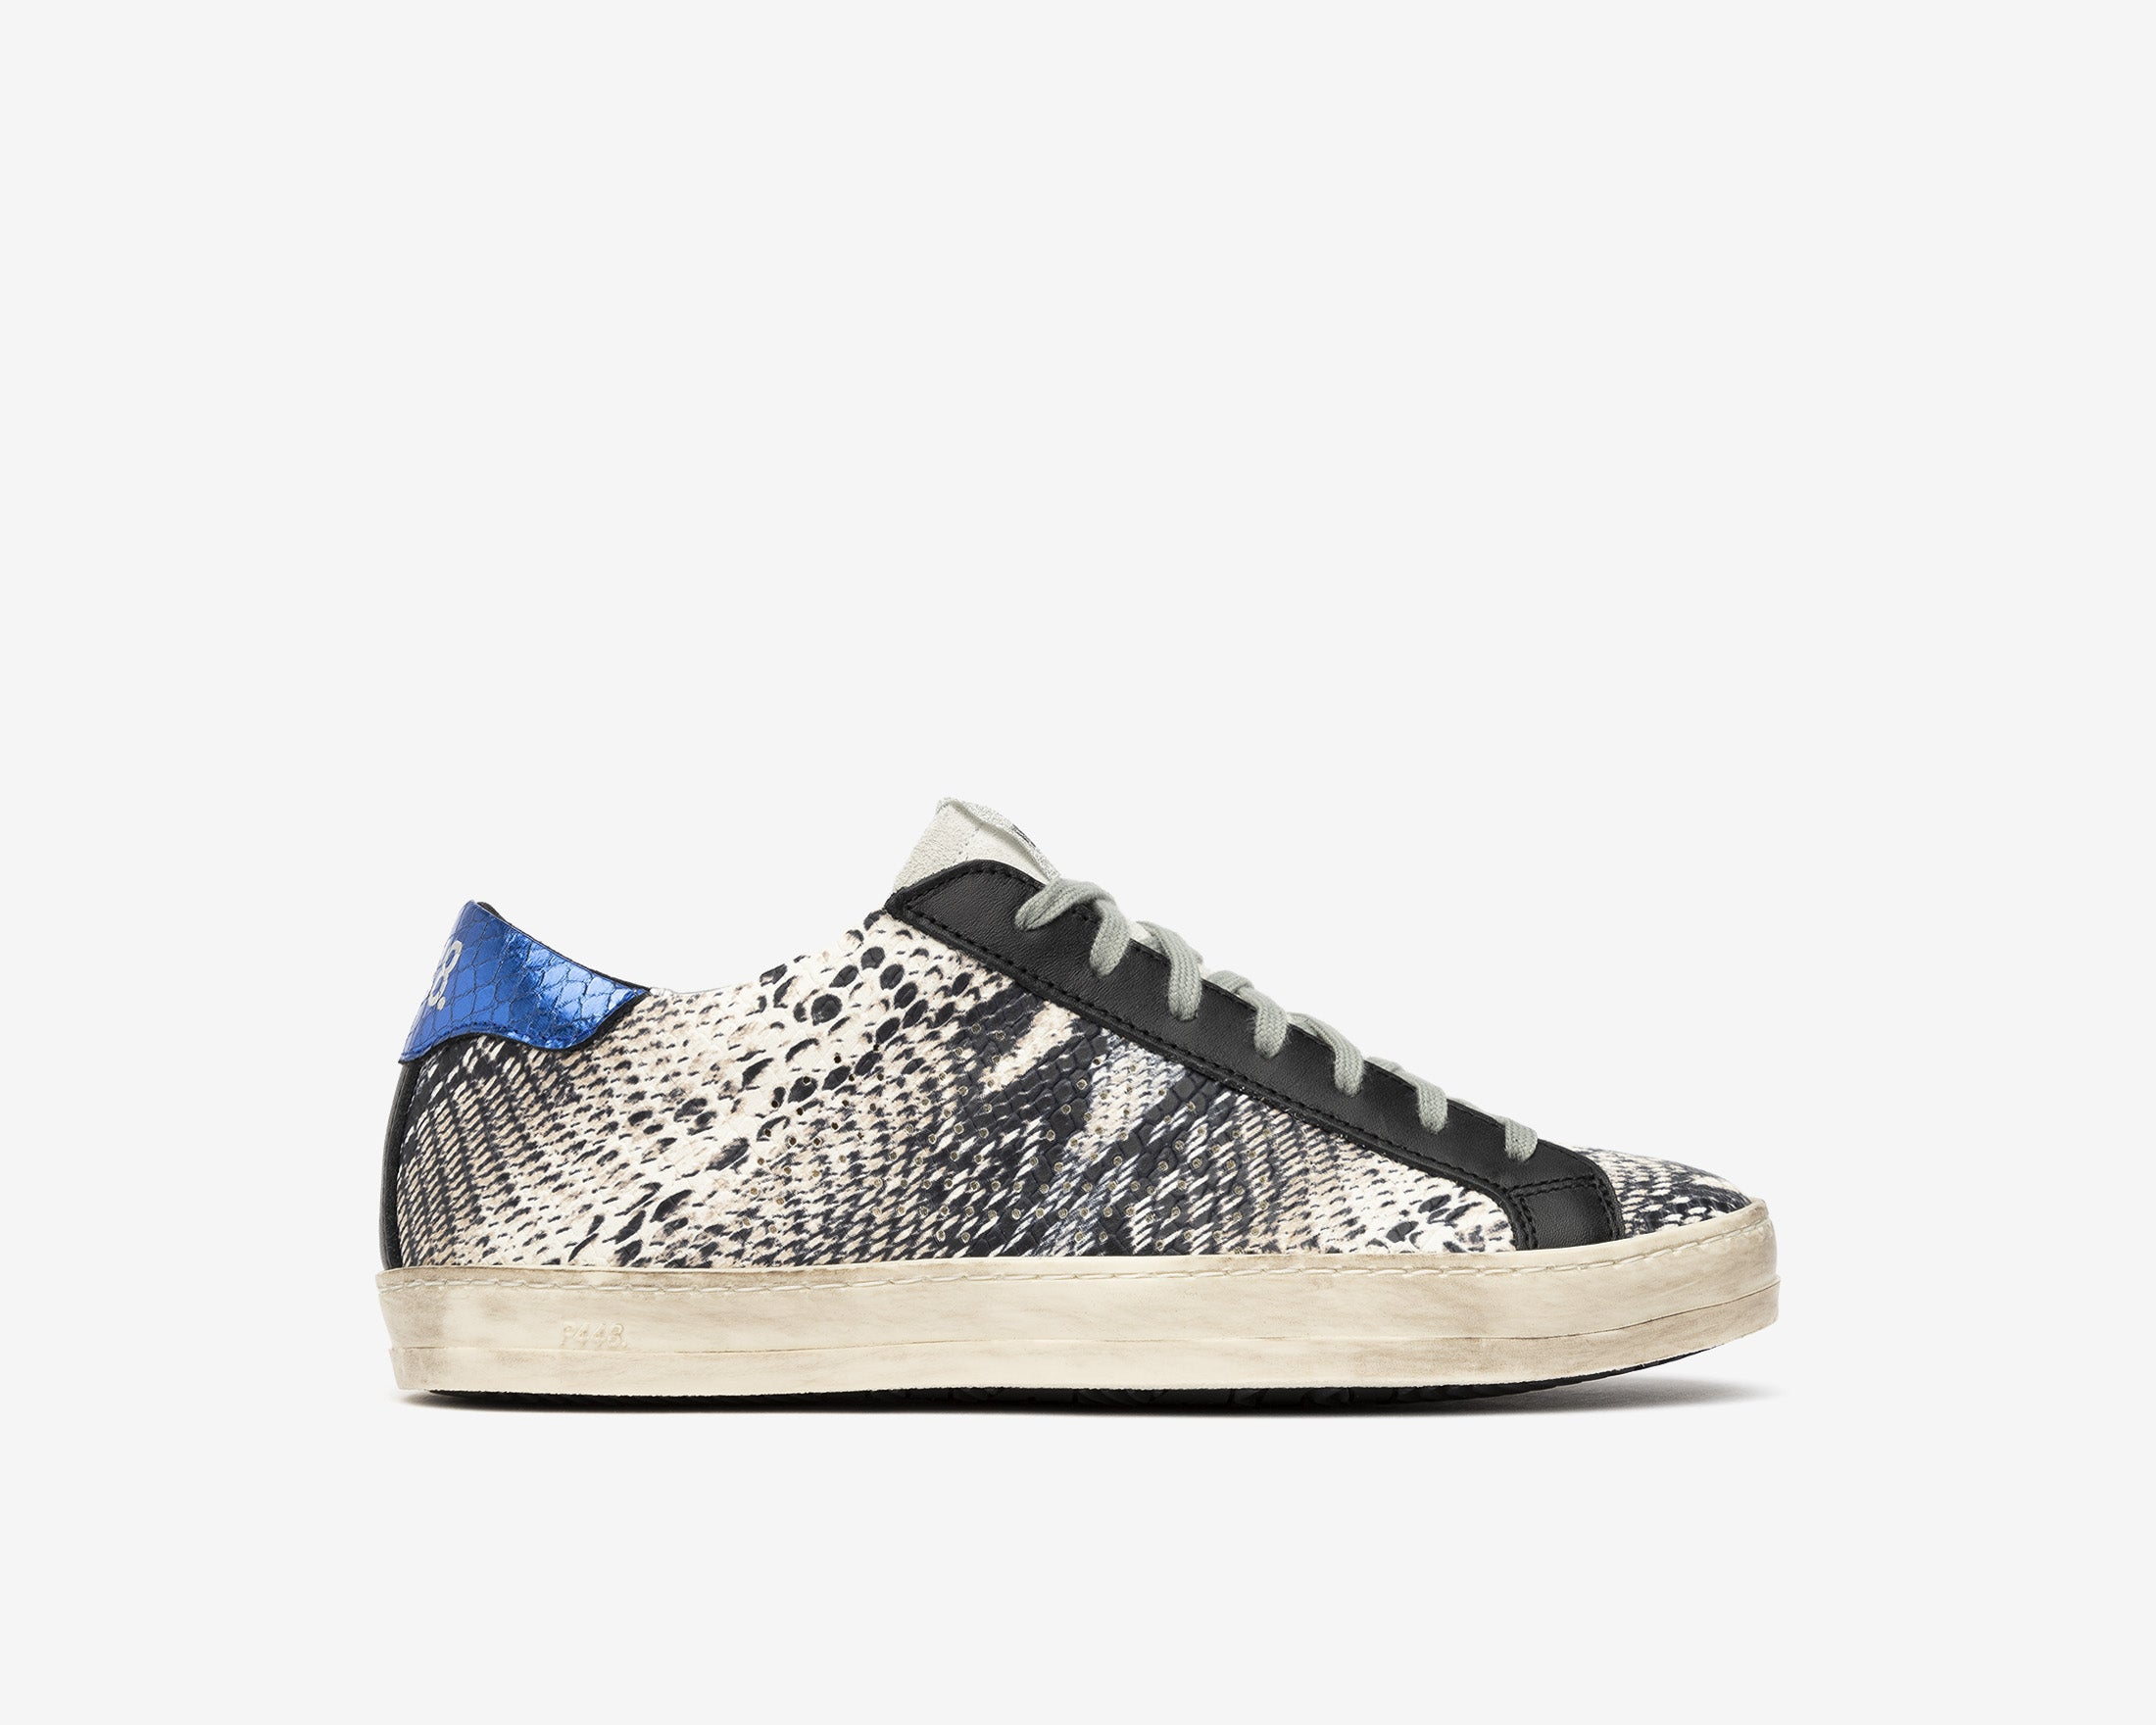 John Low-Top Sneaker in Twister Python - Profile